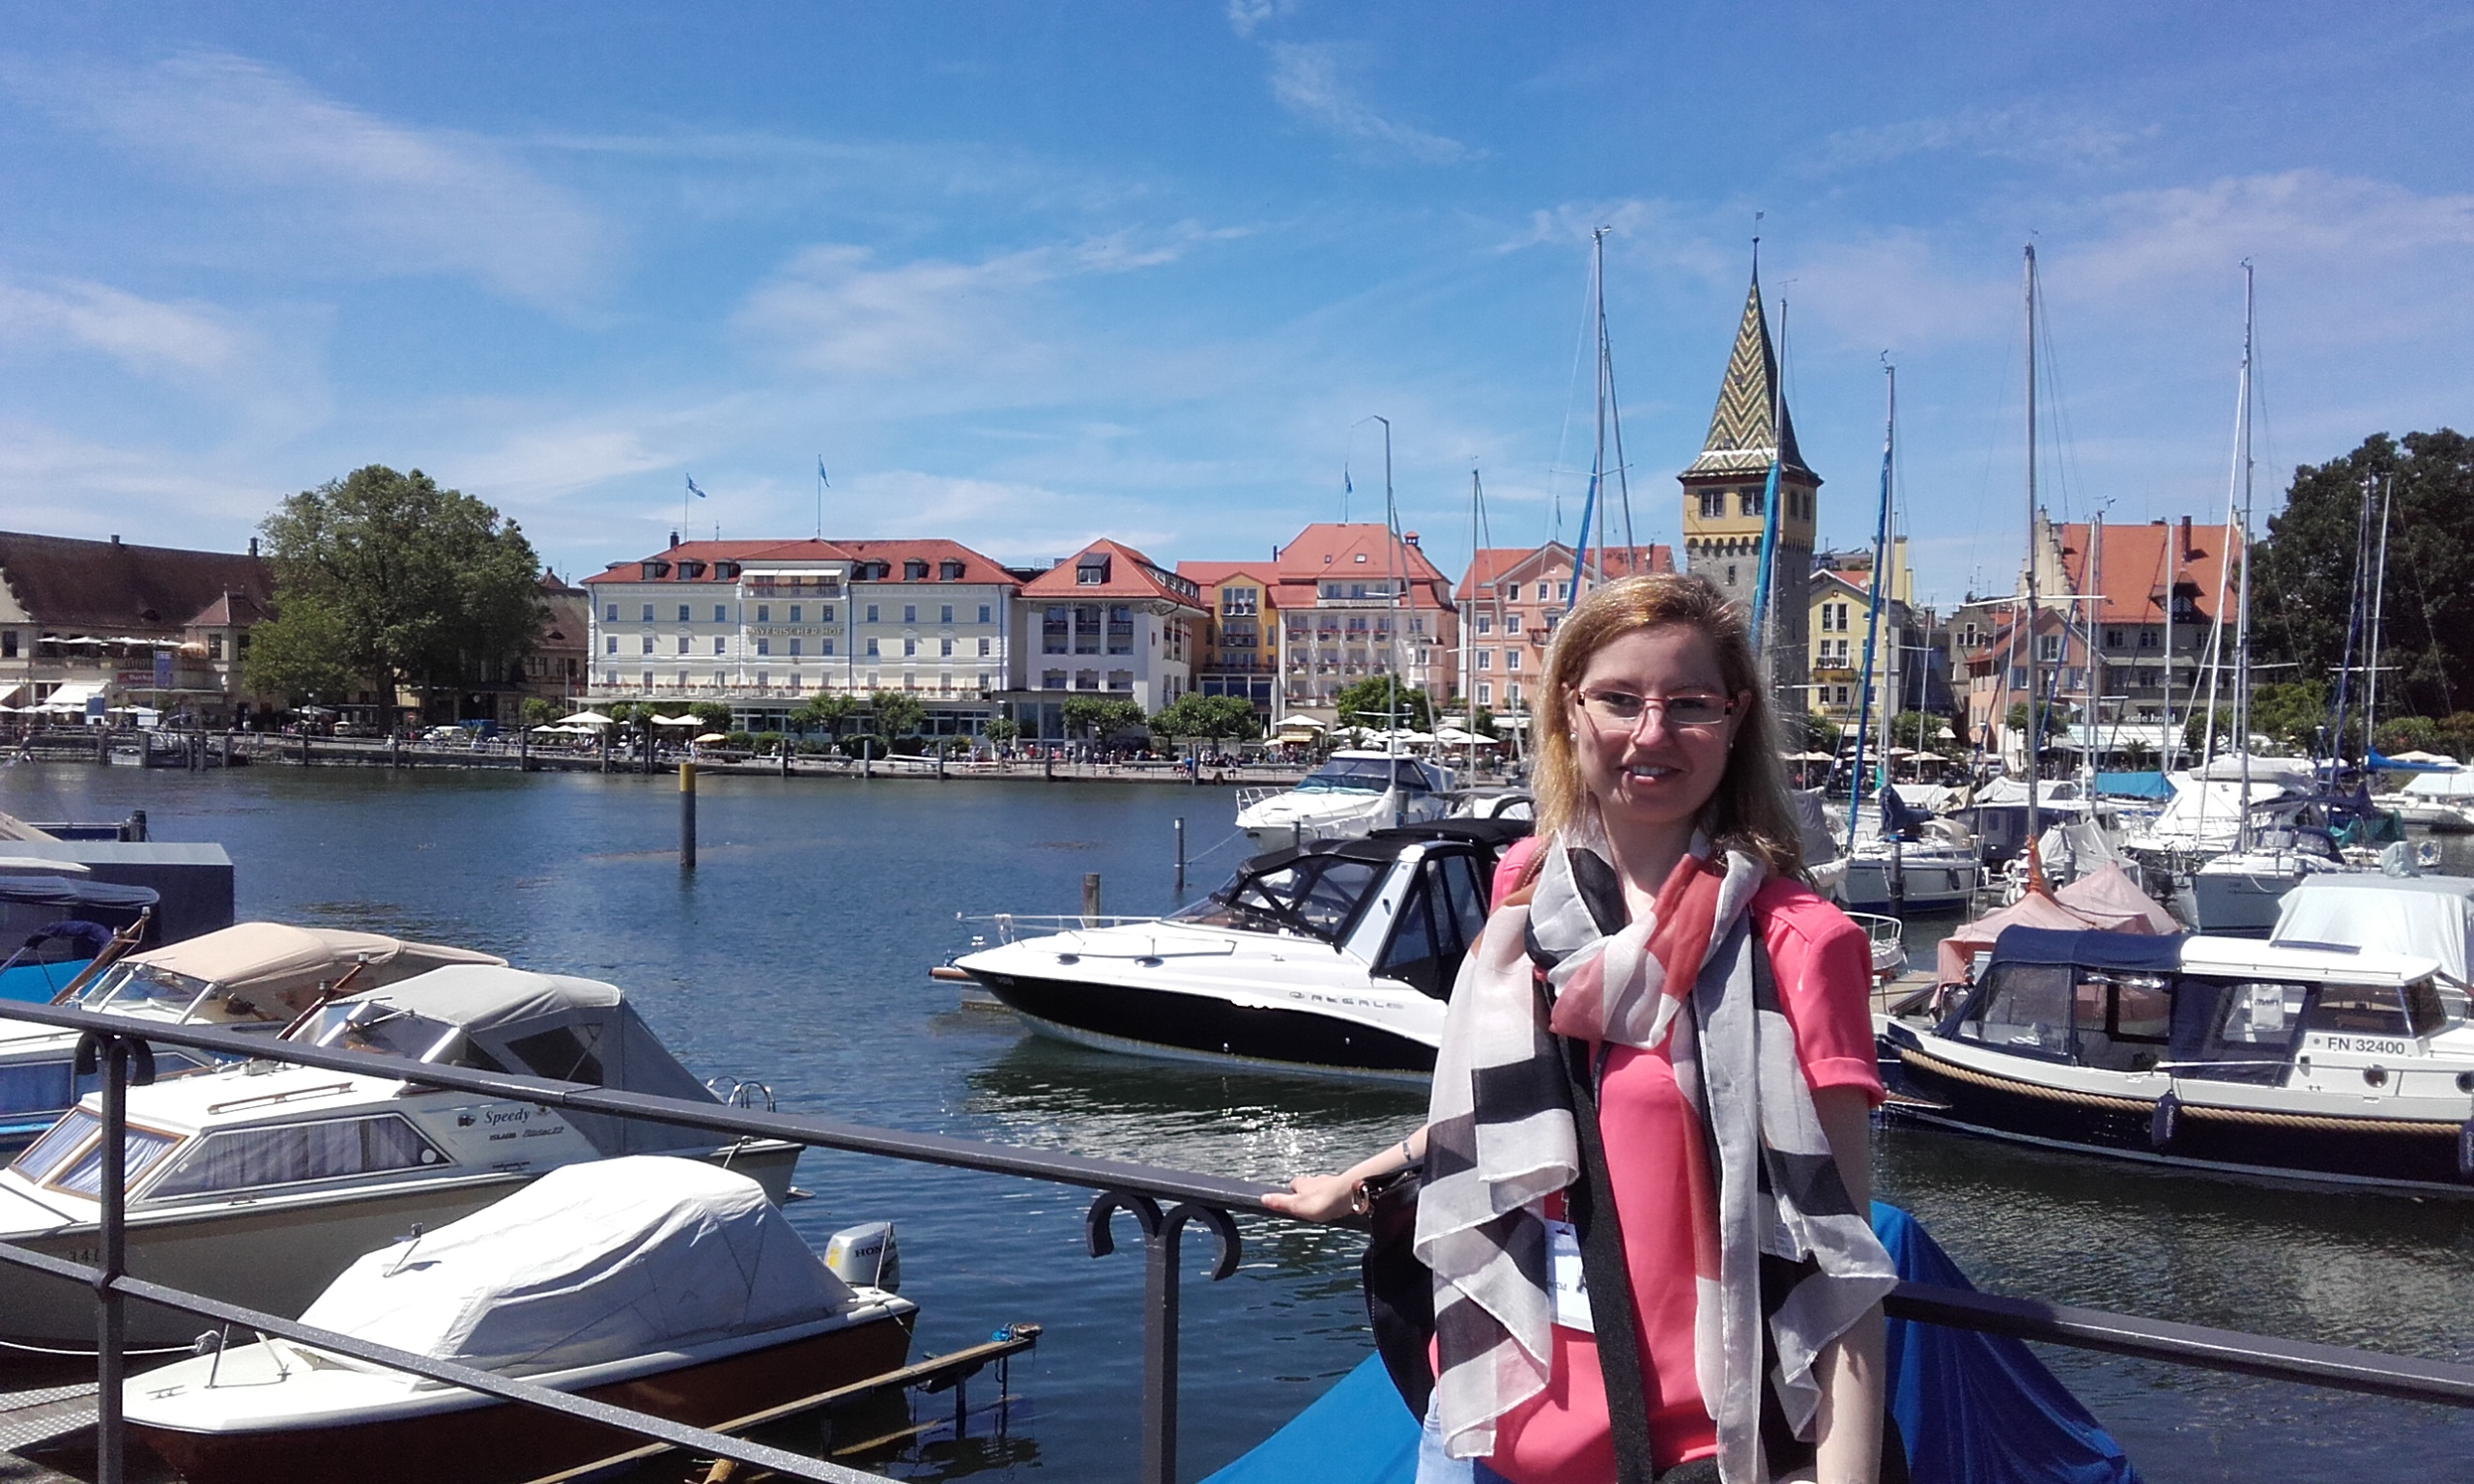 Ana at the harbor in Lindau